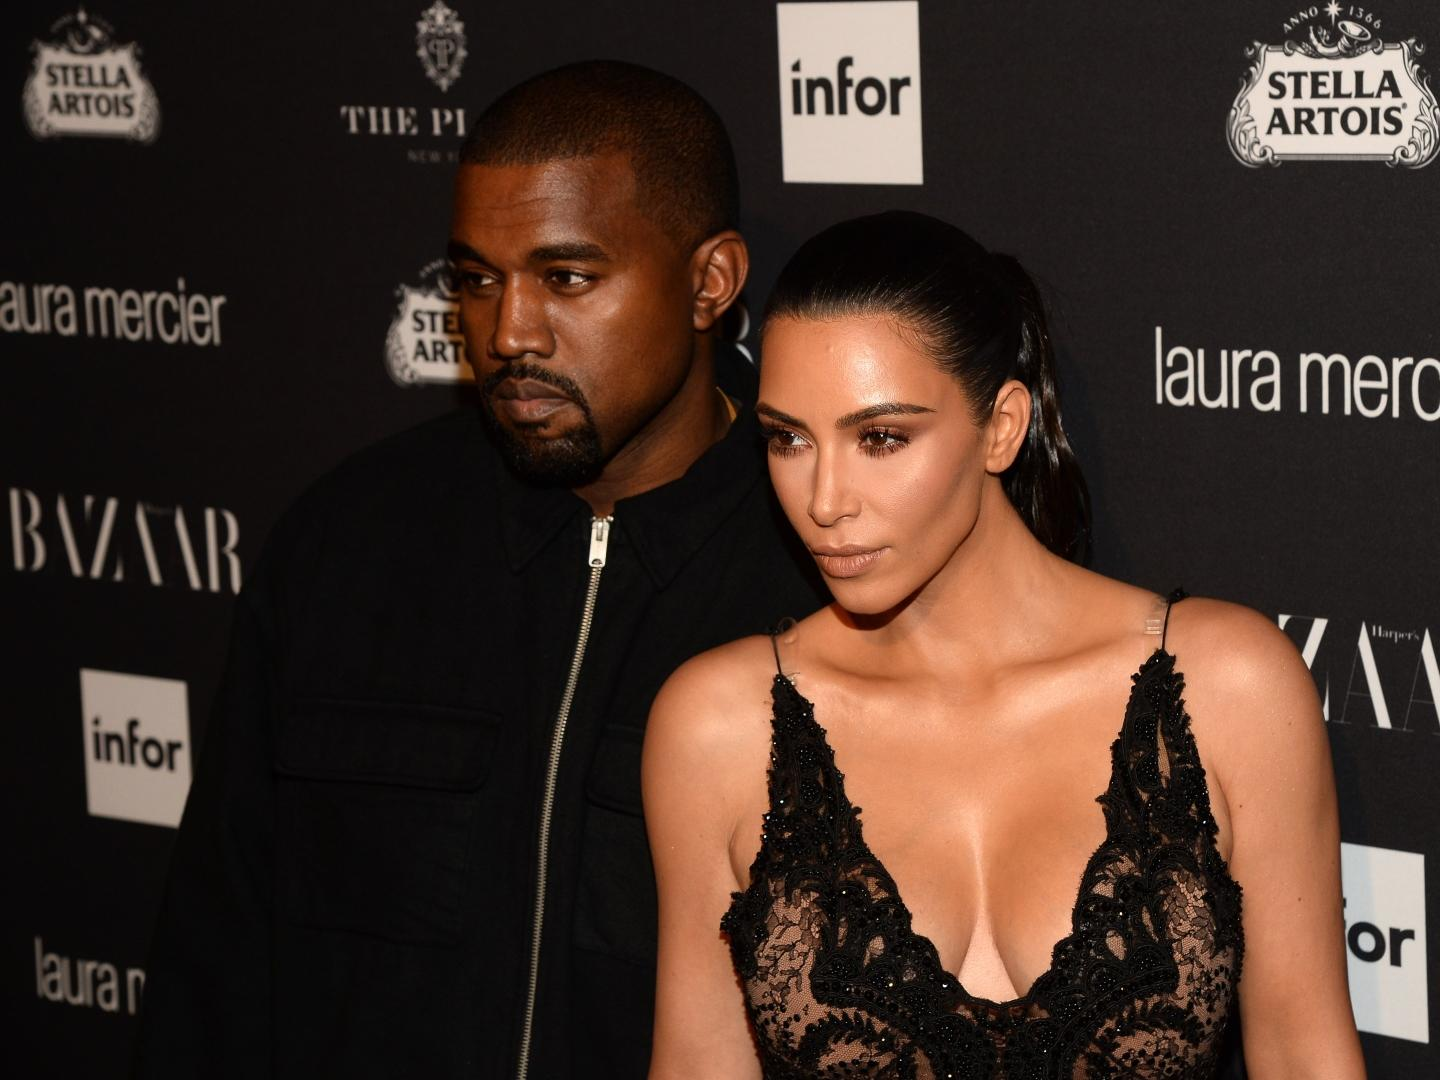 Kim Kardashian Is Sentimental in First Instagram Post Since Filing for Divorce From Kanye West - Yahoo Entertainment